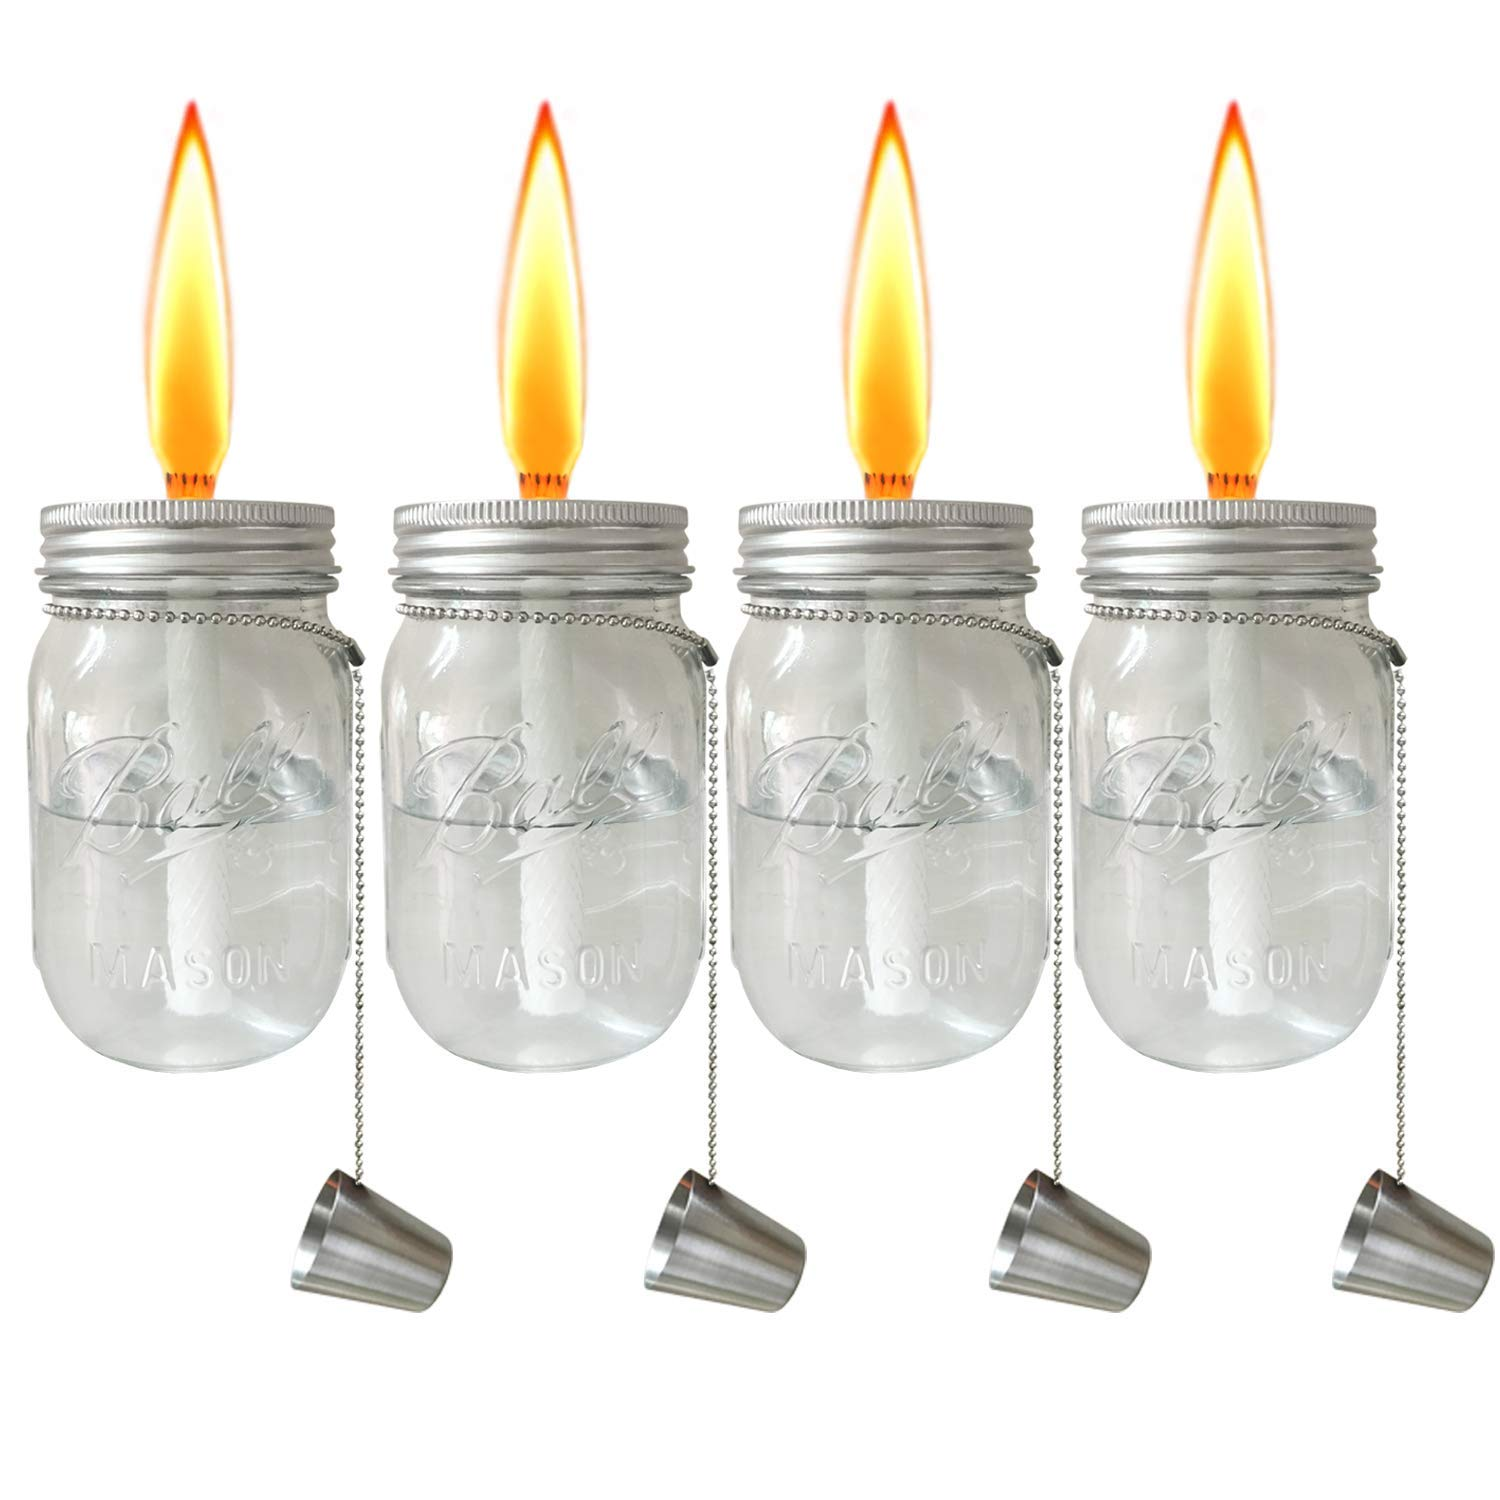 Aubasic Glass Mason Jar Table Torch,Fiberglass Wicks,Stainless Steel Lid with Fire Cover Caps,6-inch High,Clear,Set of 4